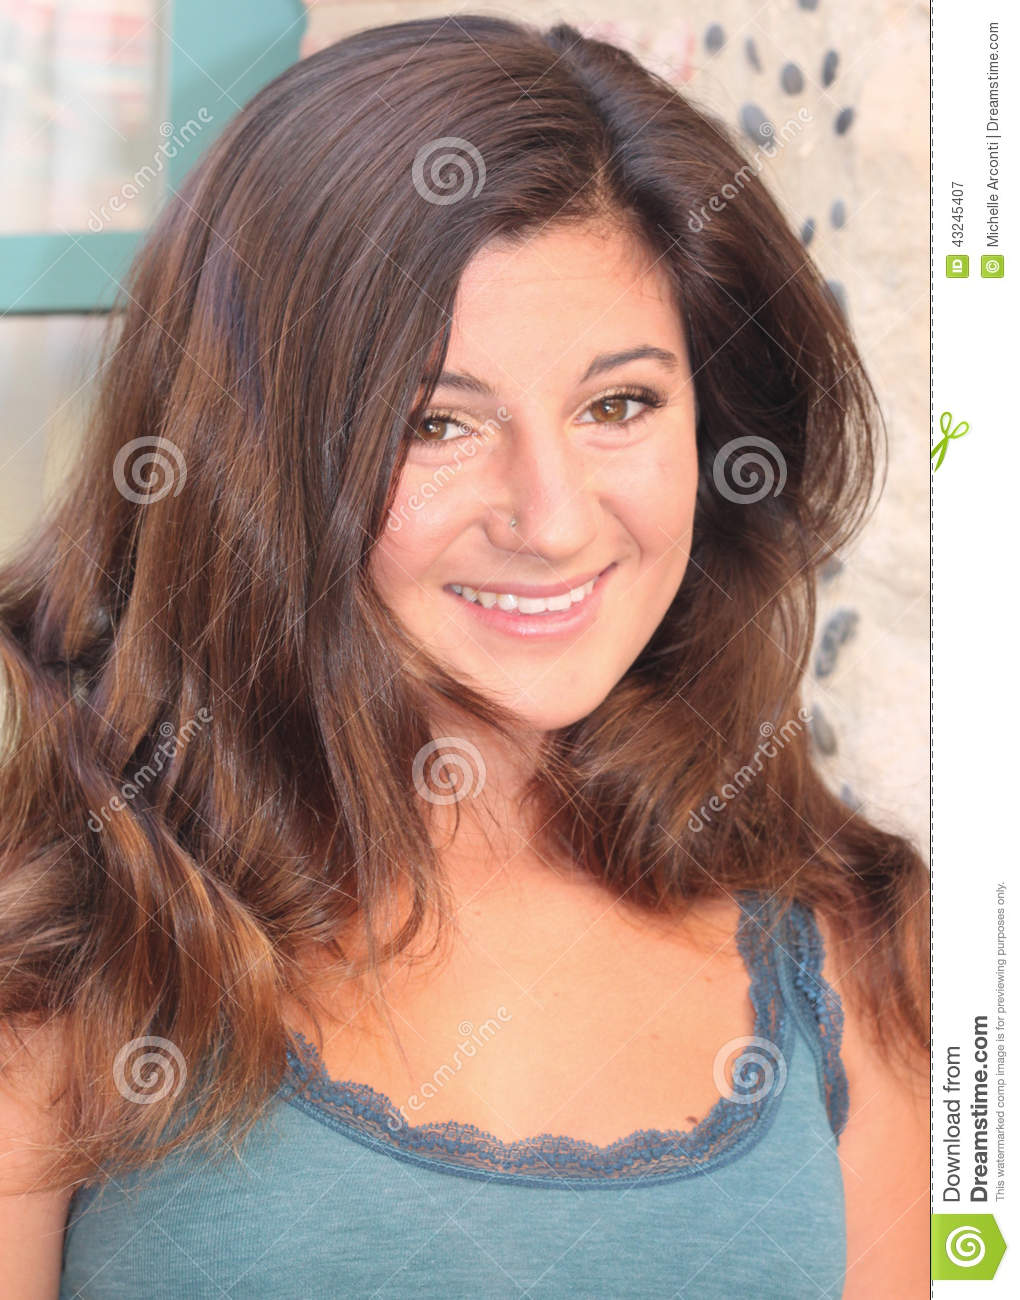 Italian American: Perfect Smile Stock Image. Image Of Nose, Girl, Smiling